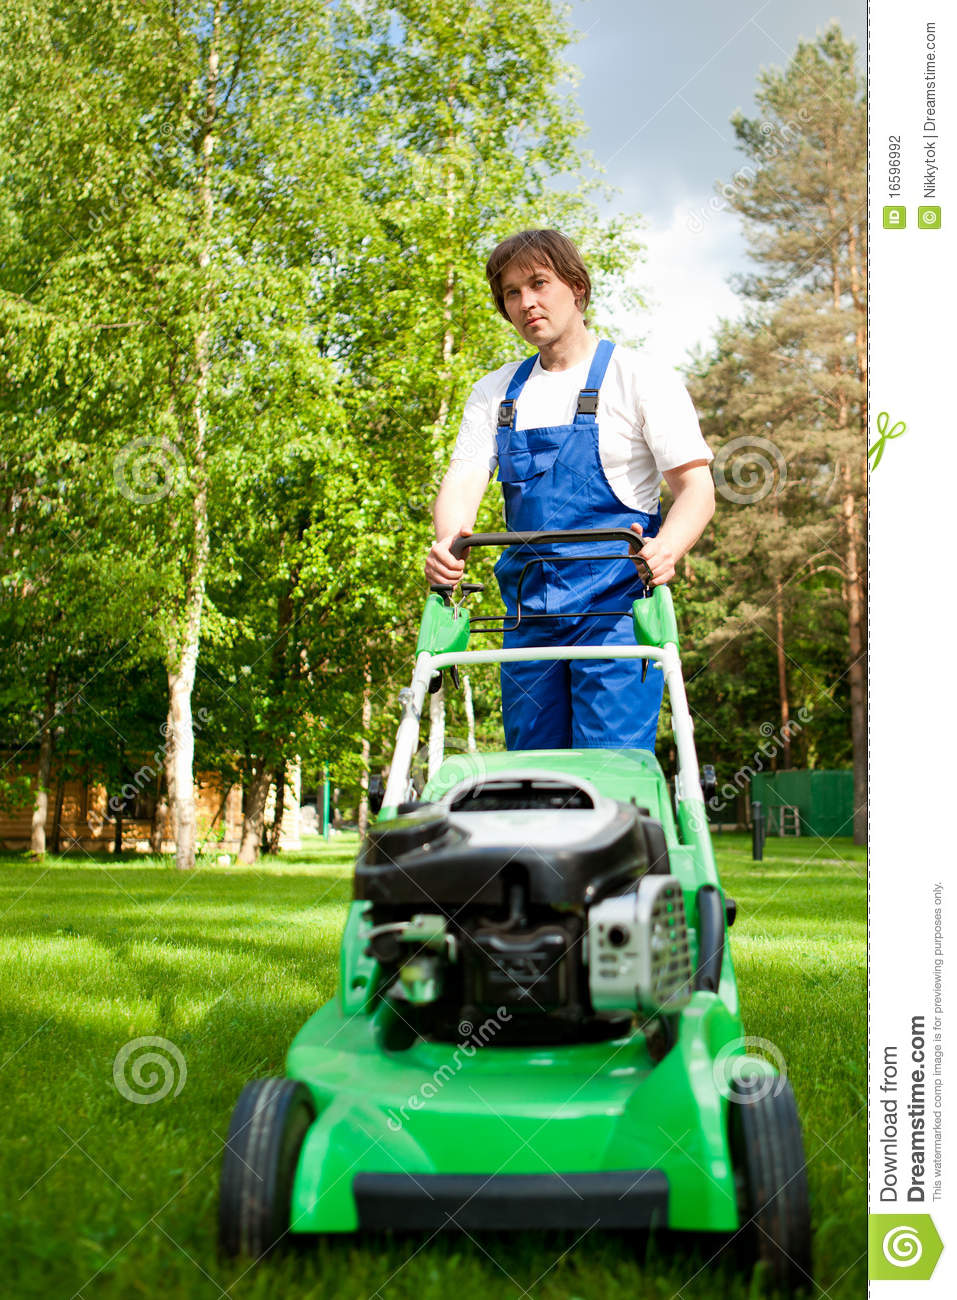 Lawn mover man